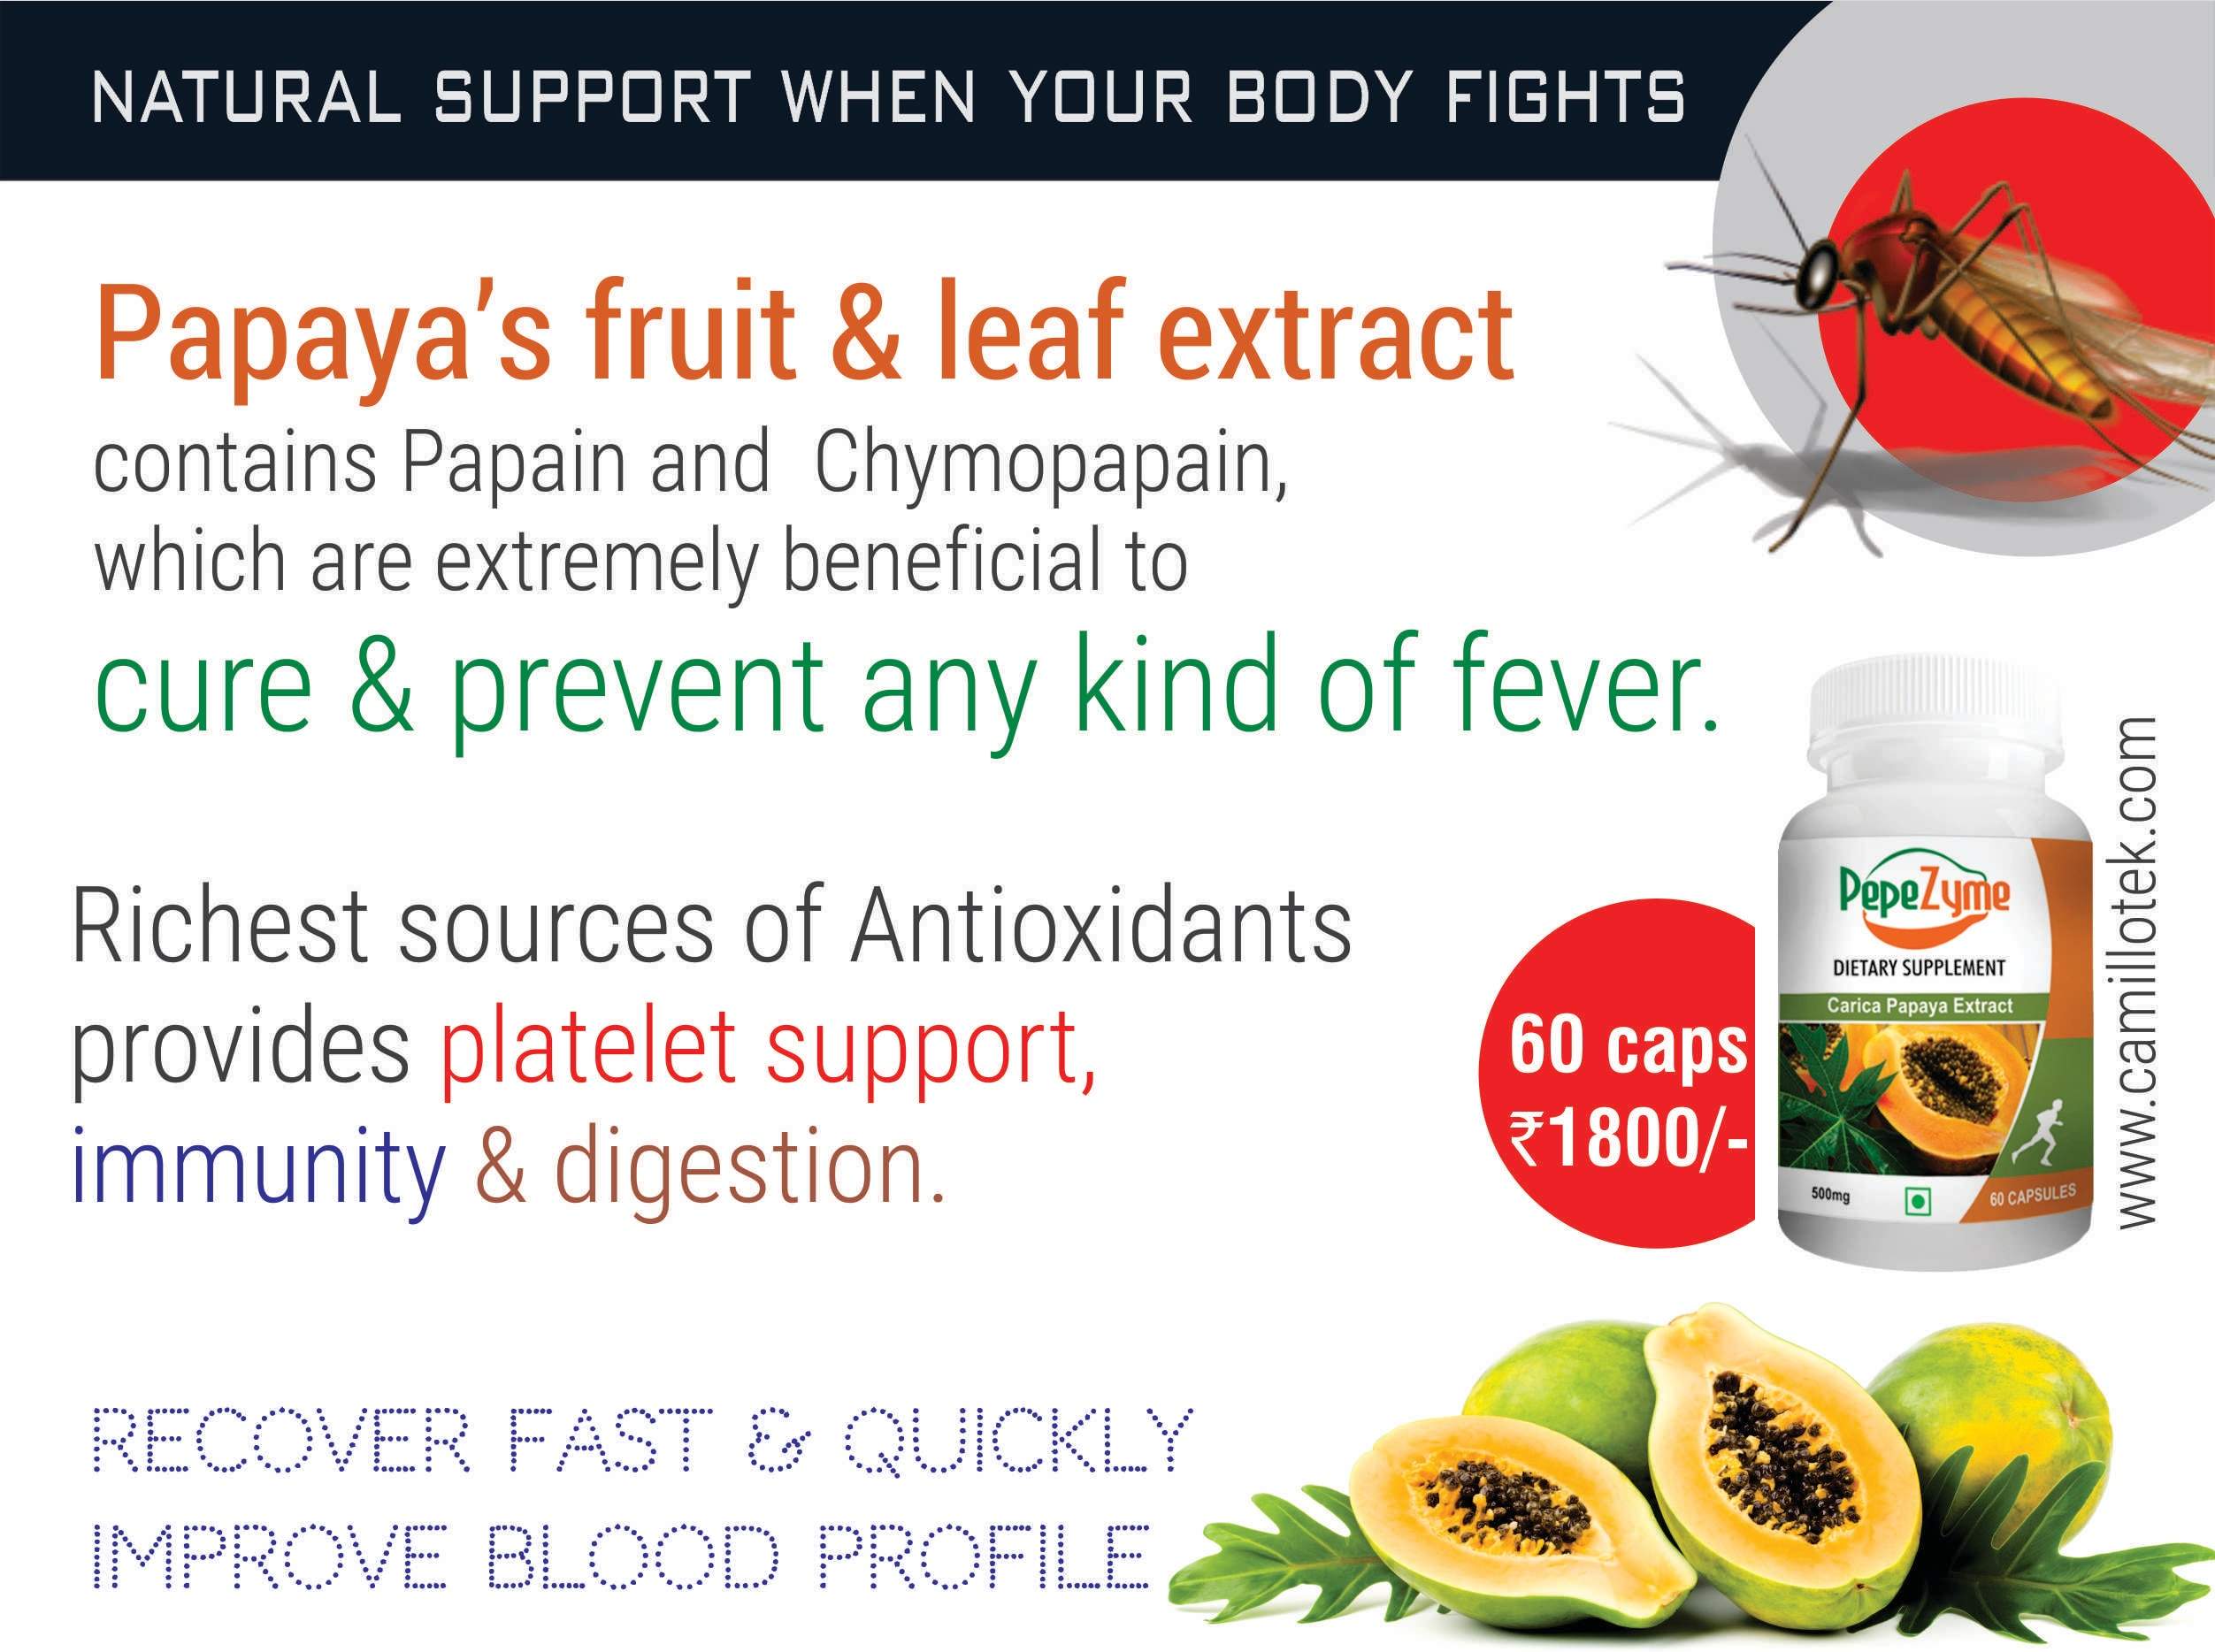 Papaya's fruit & leaf extract contains Papain and Chymopapain, which are extremely beneficial to cure and prevent any kind of fever. Papaya fruit & leaf extract is one of the richest sources of Antioxidants which had many health and wellness benefits including platelet support, immunity and digestion.  Papaya for fever, papaya capsules online, papaya for supplement, papaya for skin, papaya for dengue, papaya for absorption, papaya for platelet count, papya for digestion, papaya for immunity and benefits of papaya.  Papaya capsules manufacturers, Papaya capsules suppliers, Papaya capsules exporters wholesalers, traders in Chennai, India.